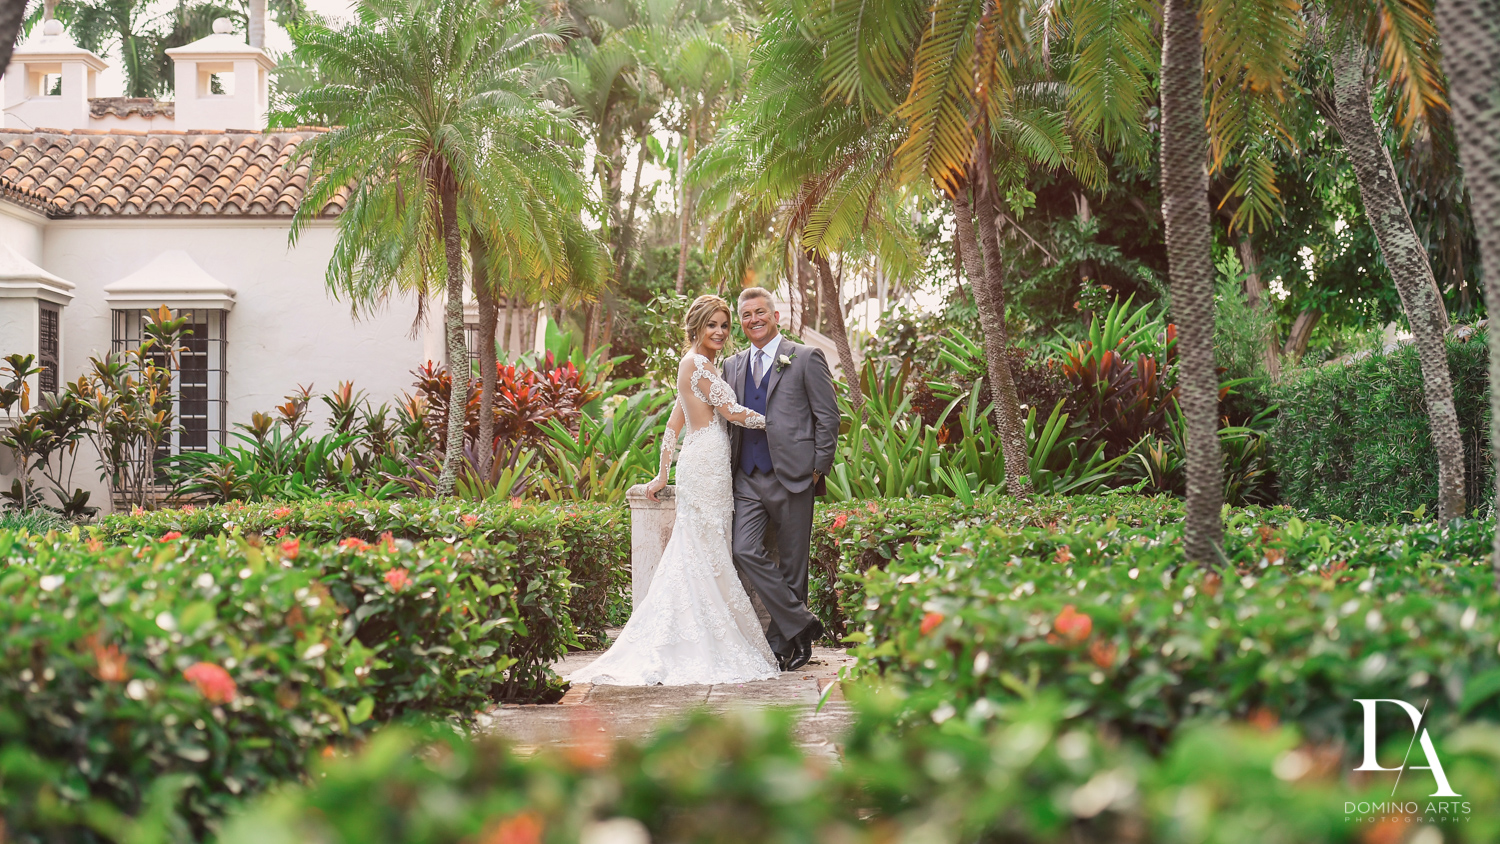 portraits Classic & Elegant Wedding Photography at Fisher Island Miami by Domino Arts Photography